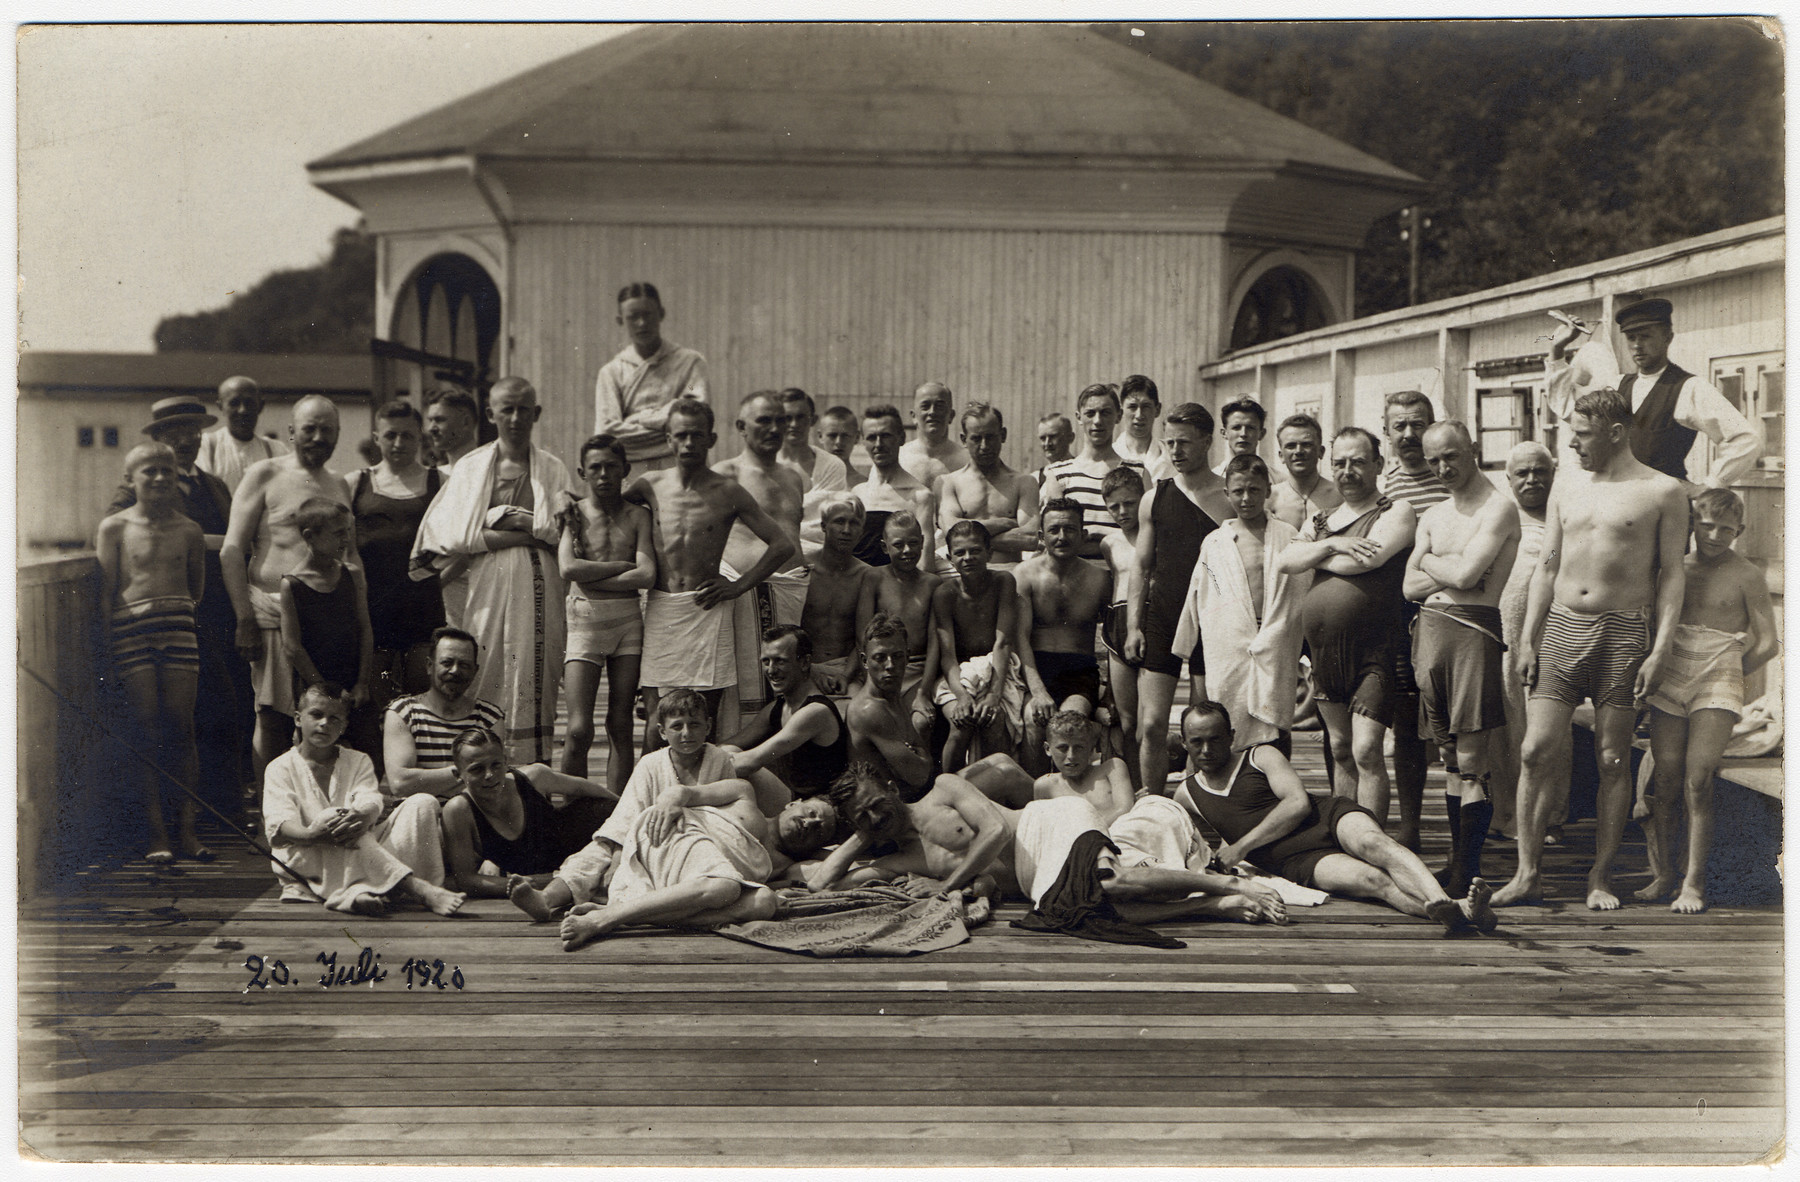 Max Hanauer sits in the center wearing black swimming trunks.